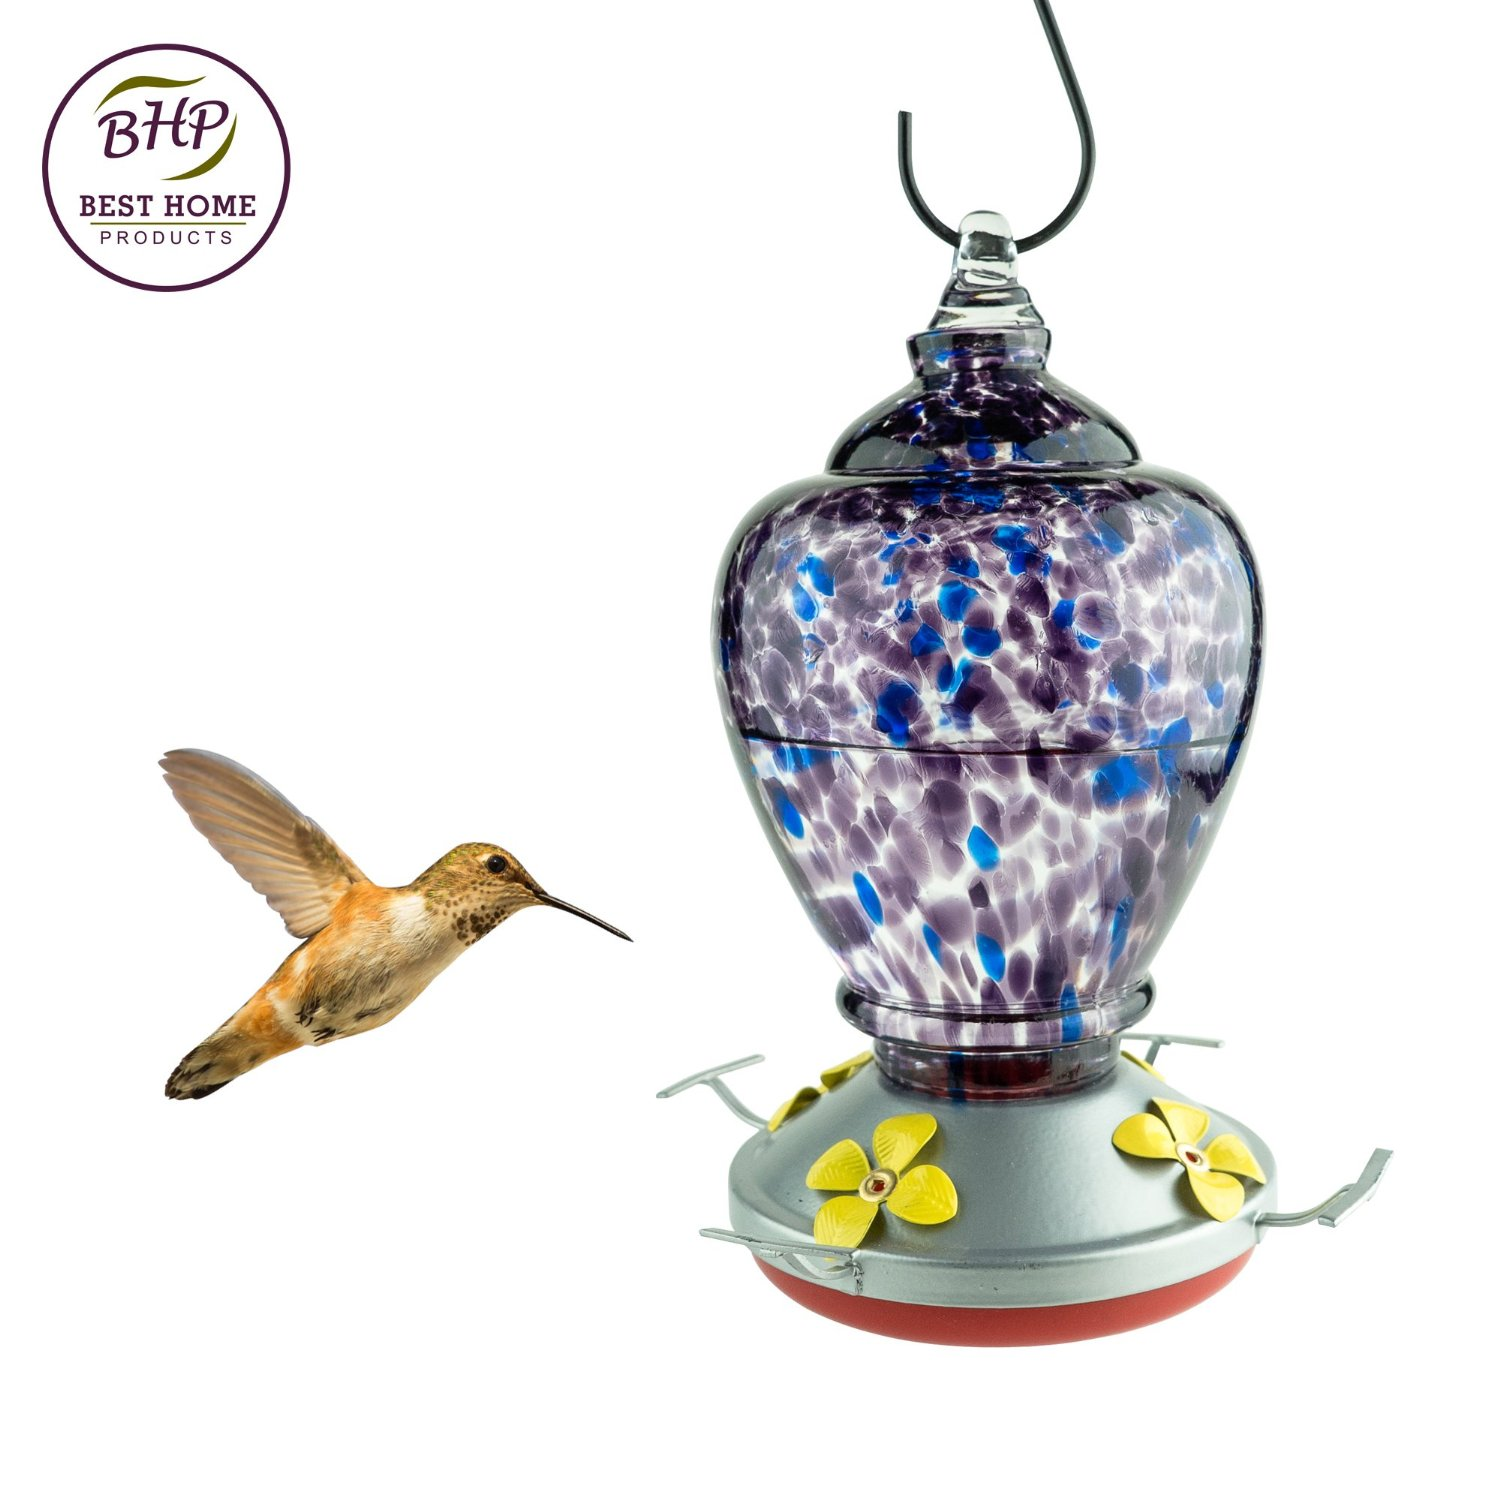 wide mouth hummingbird feeders with Autumn Impressions Purple Hummingbird Feeder With Perch on B00gvl015q together with Perky Pet Planter Box Plastic Hummingbird Feeder in addition Emerald City Green Hummingbird Feeder With Perch as well Perky Pet 131tf 16 Ounce Glass Top Fill Hummingbird Feeder additionally Autumn Impressions Purple Hummingbird Feeder With Perch.